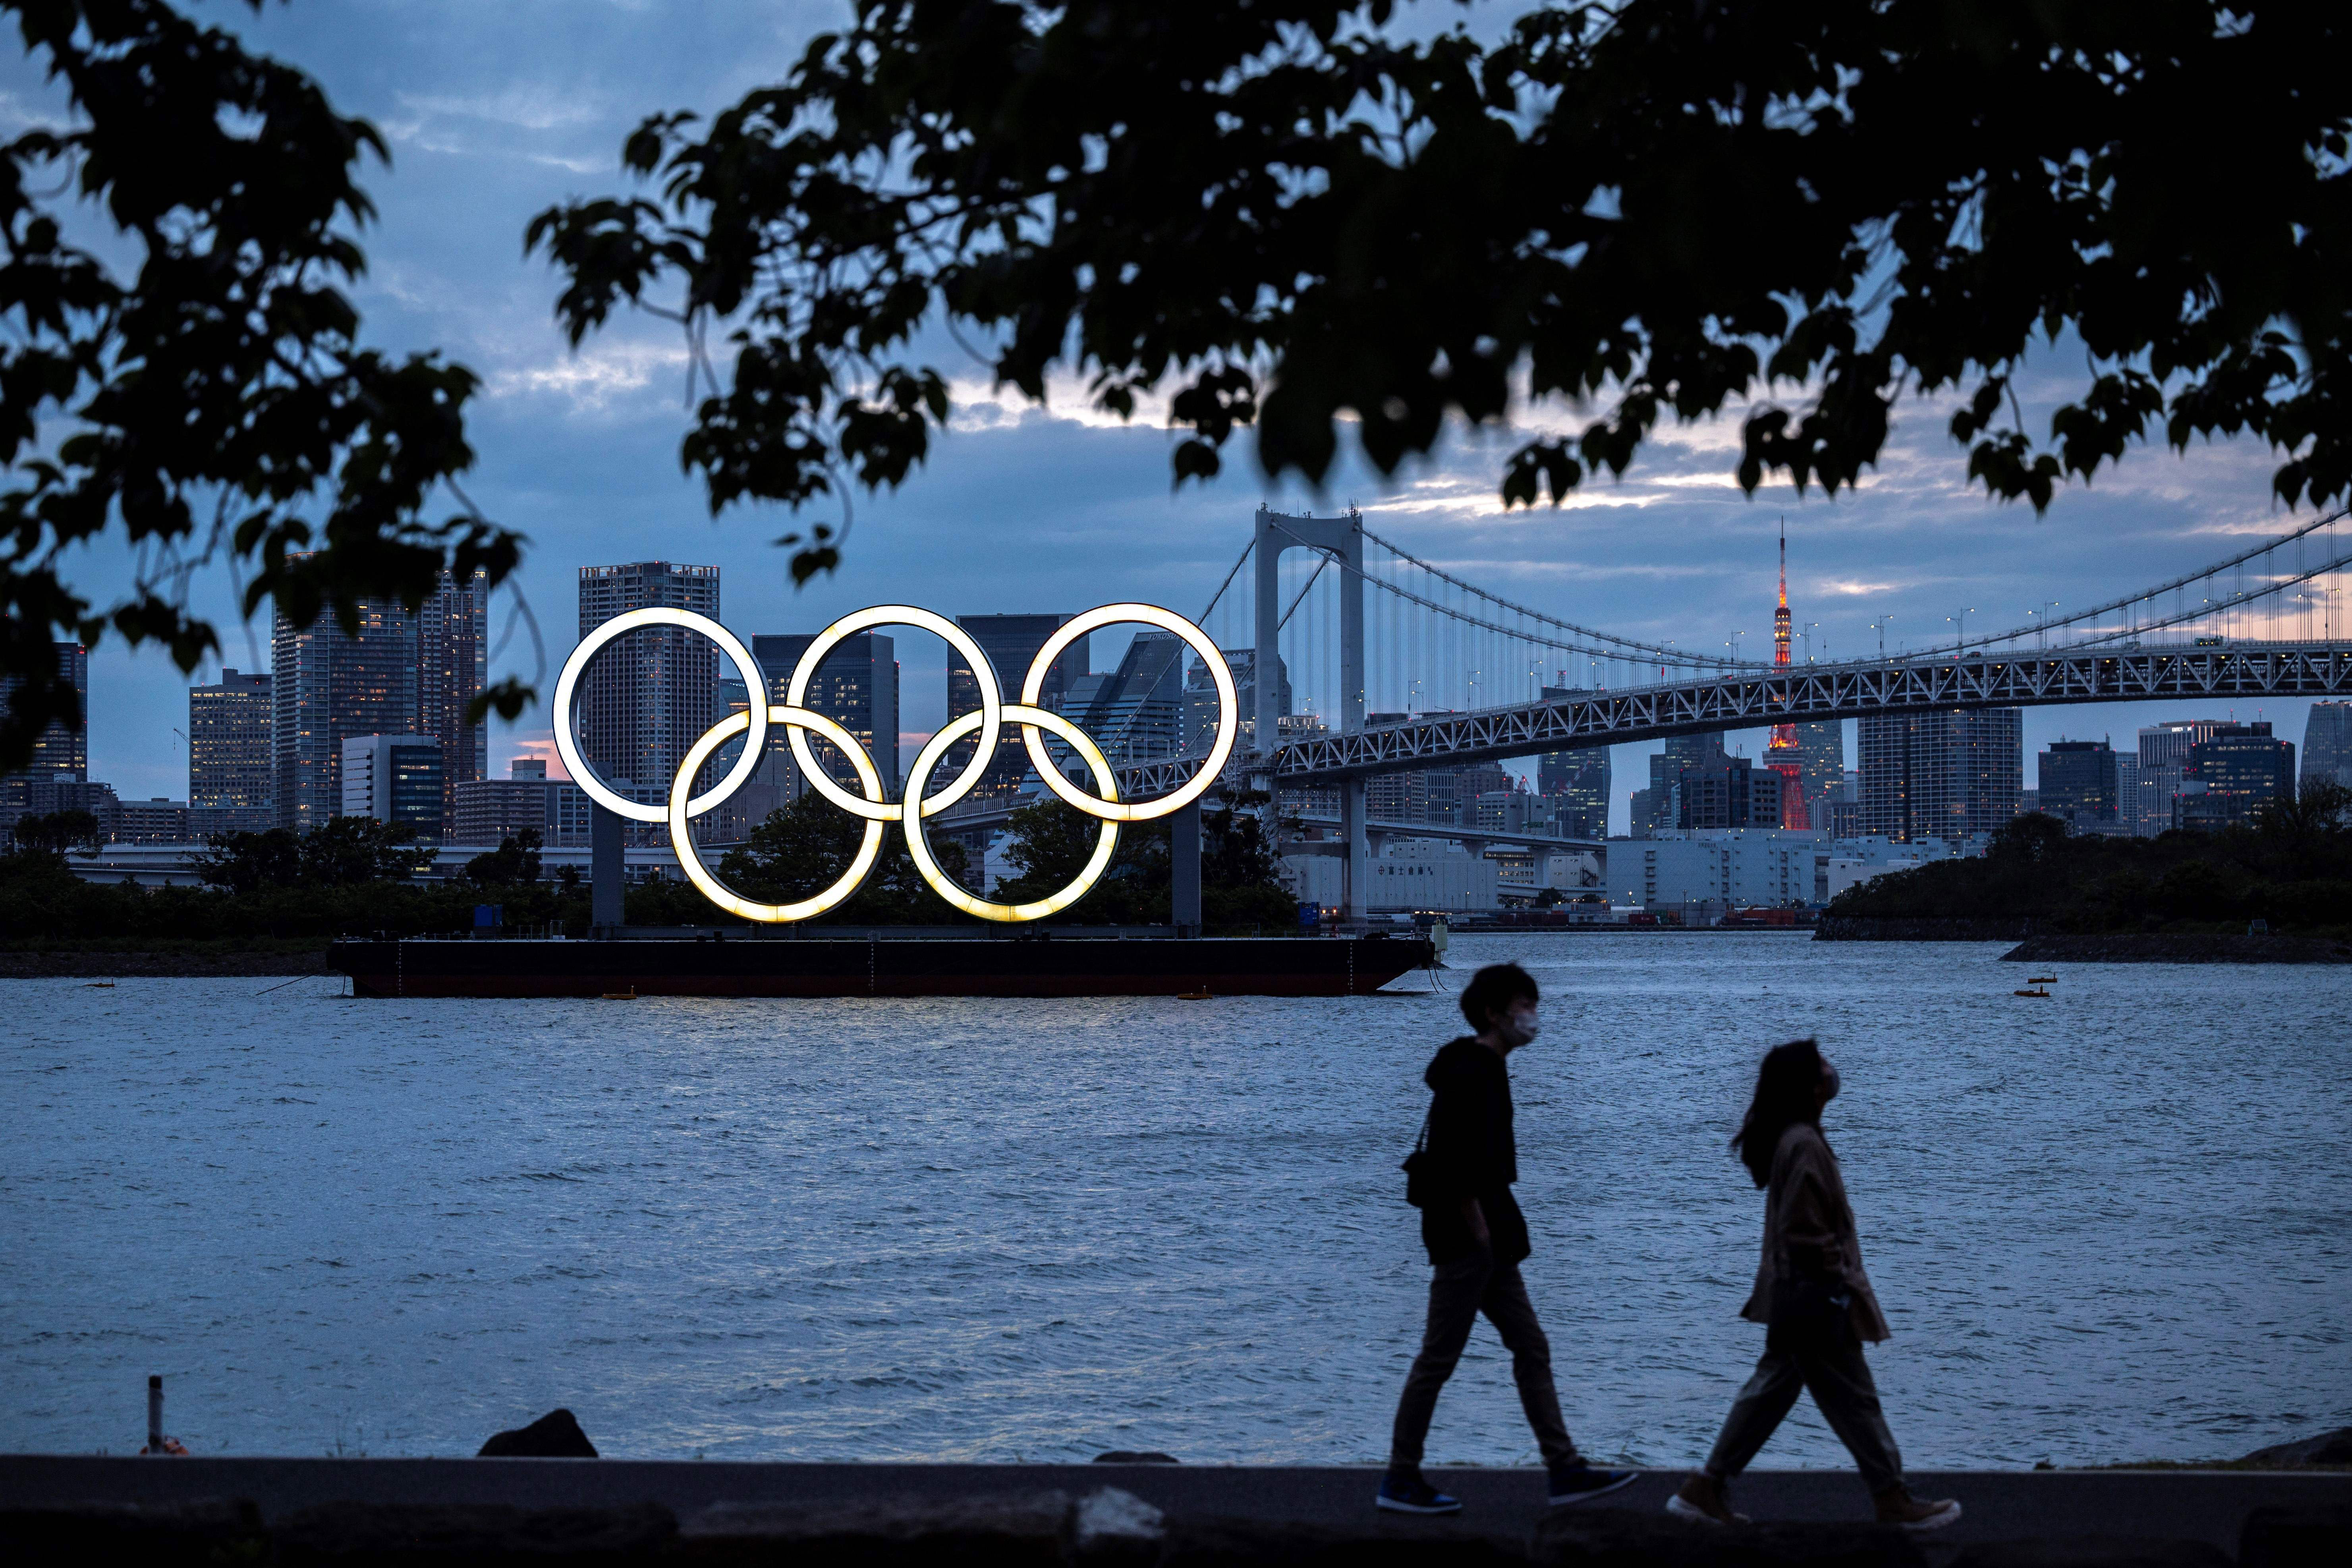 The Olympic rings are lit up at dusk on the Odaiba waterfront in Tokyo on April 28.